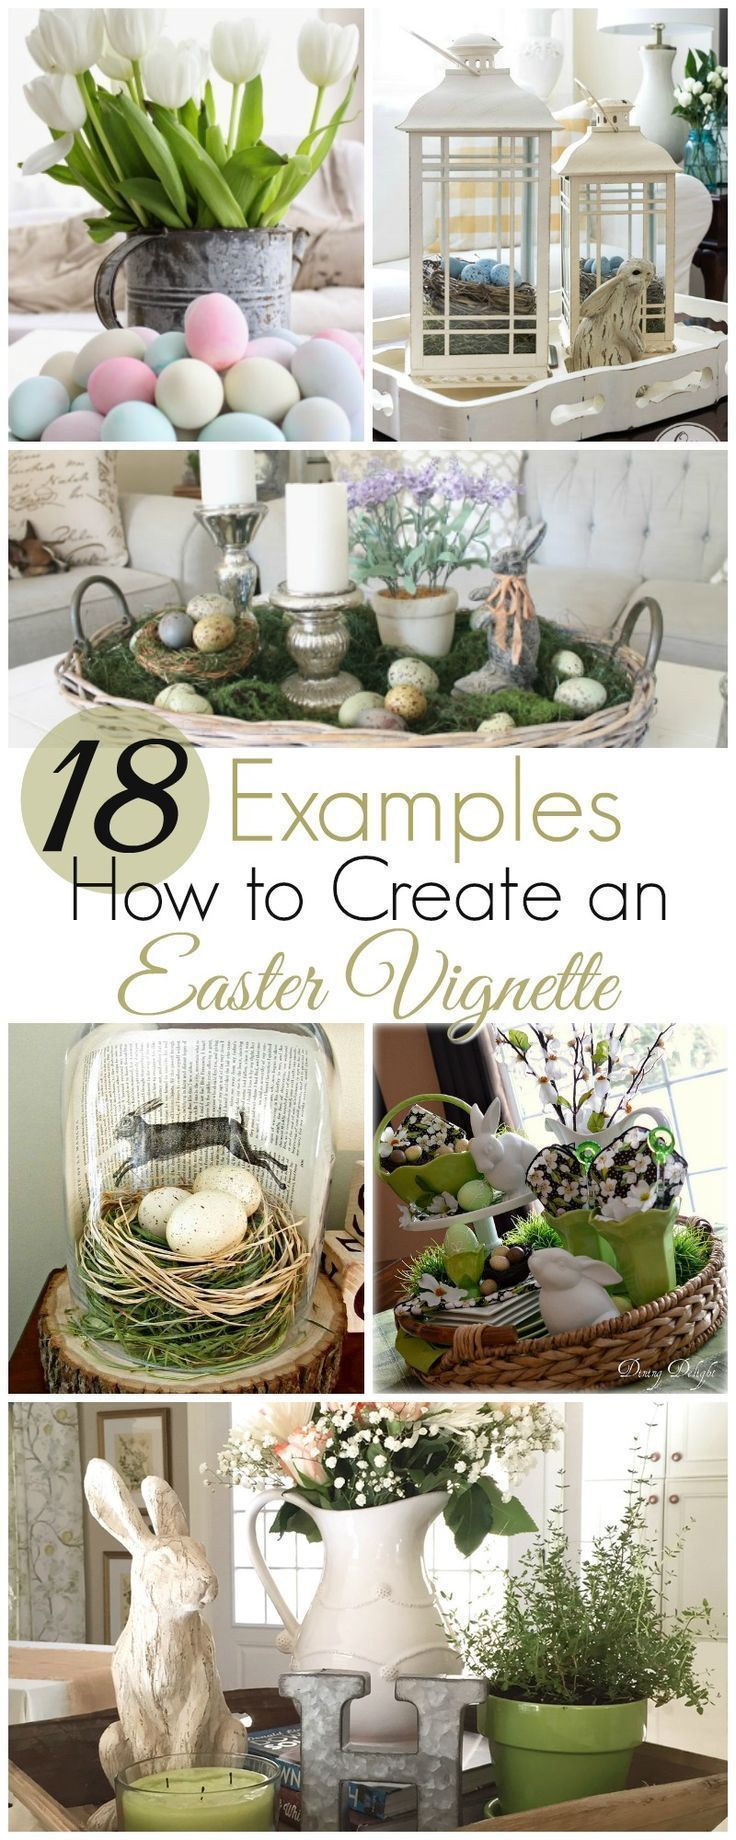 Tips on how to create an Easter Vignette using 18 examples of stunning vignettes…